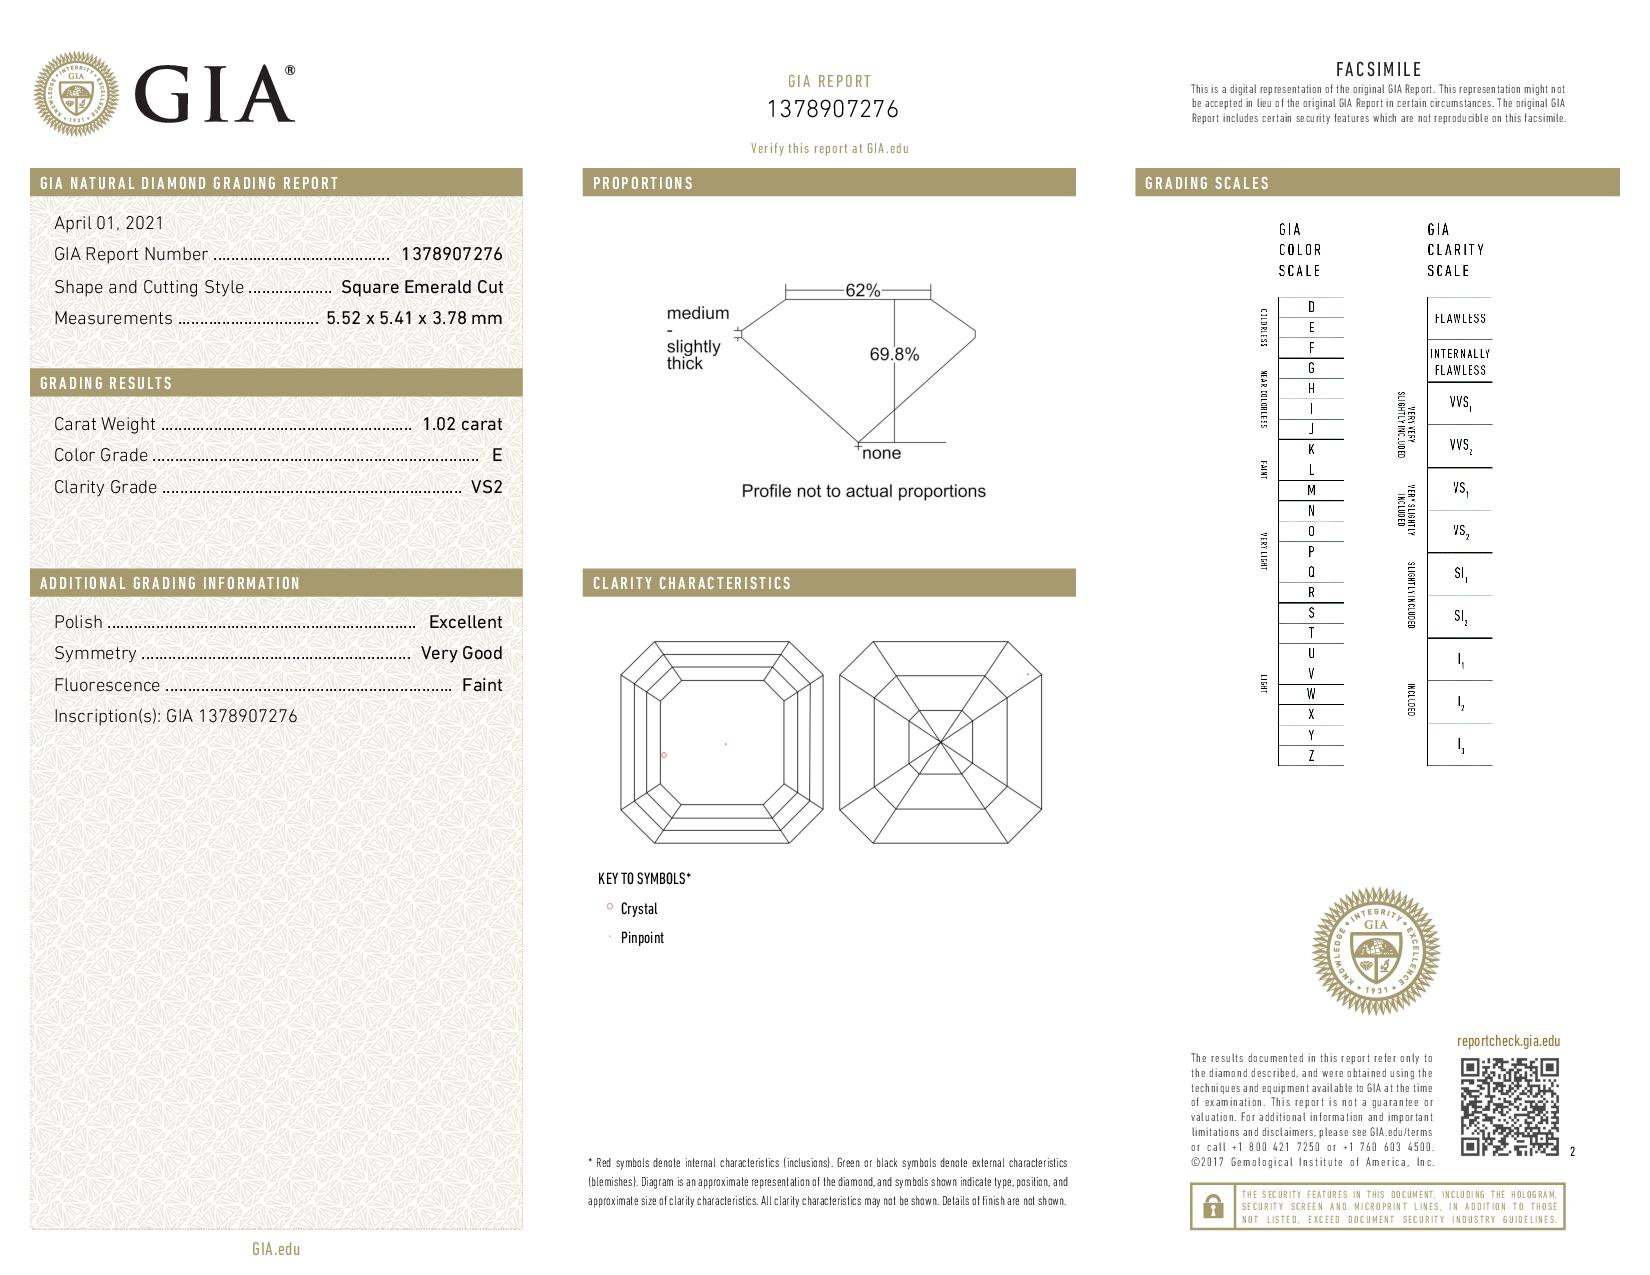 This is a 1.02 carat asscher shape, E color, VS2 clarity natural diamond accompanied by a GIA grading report.